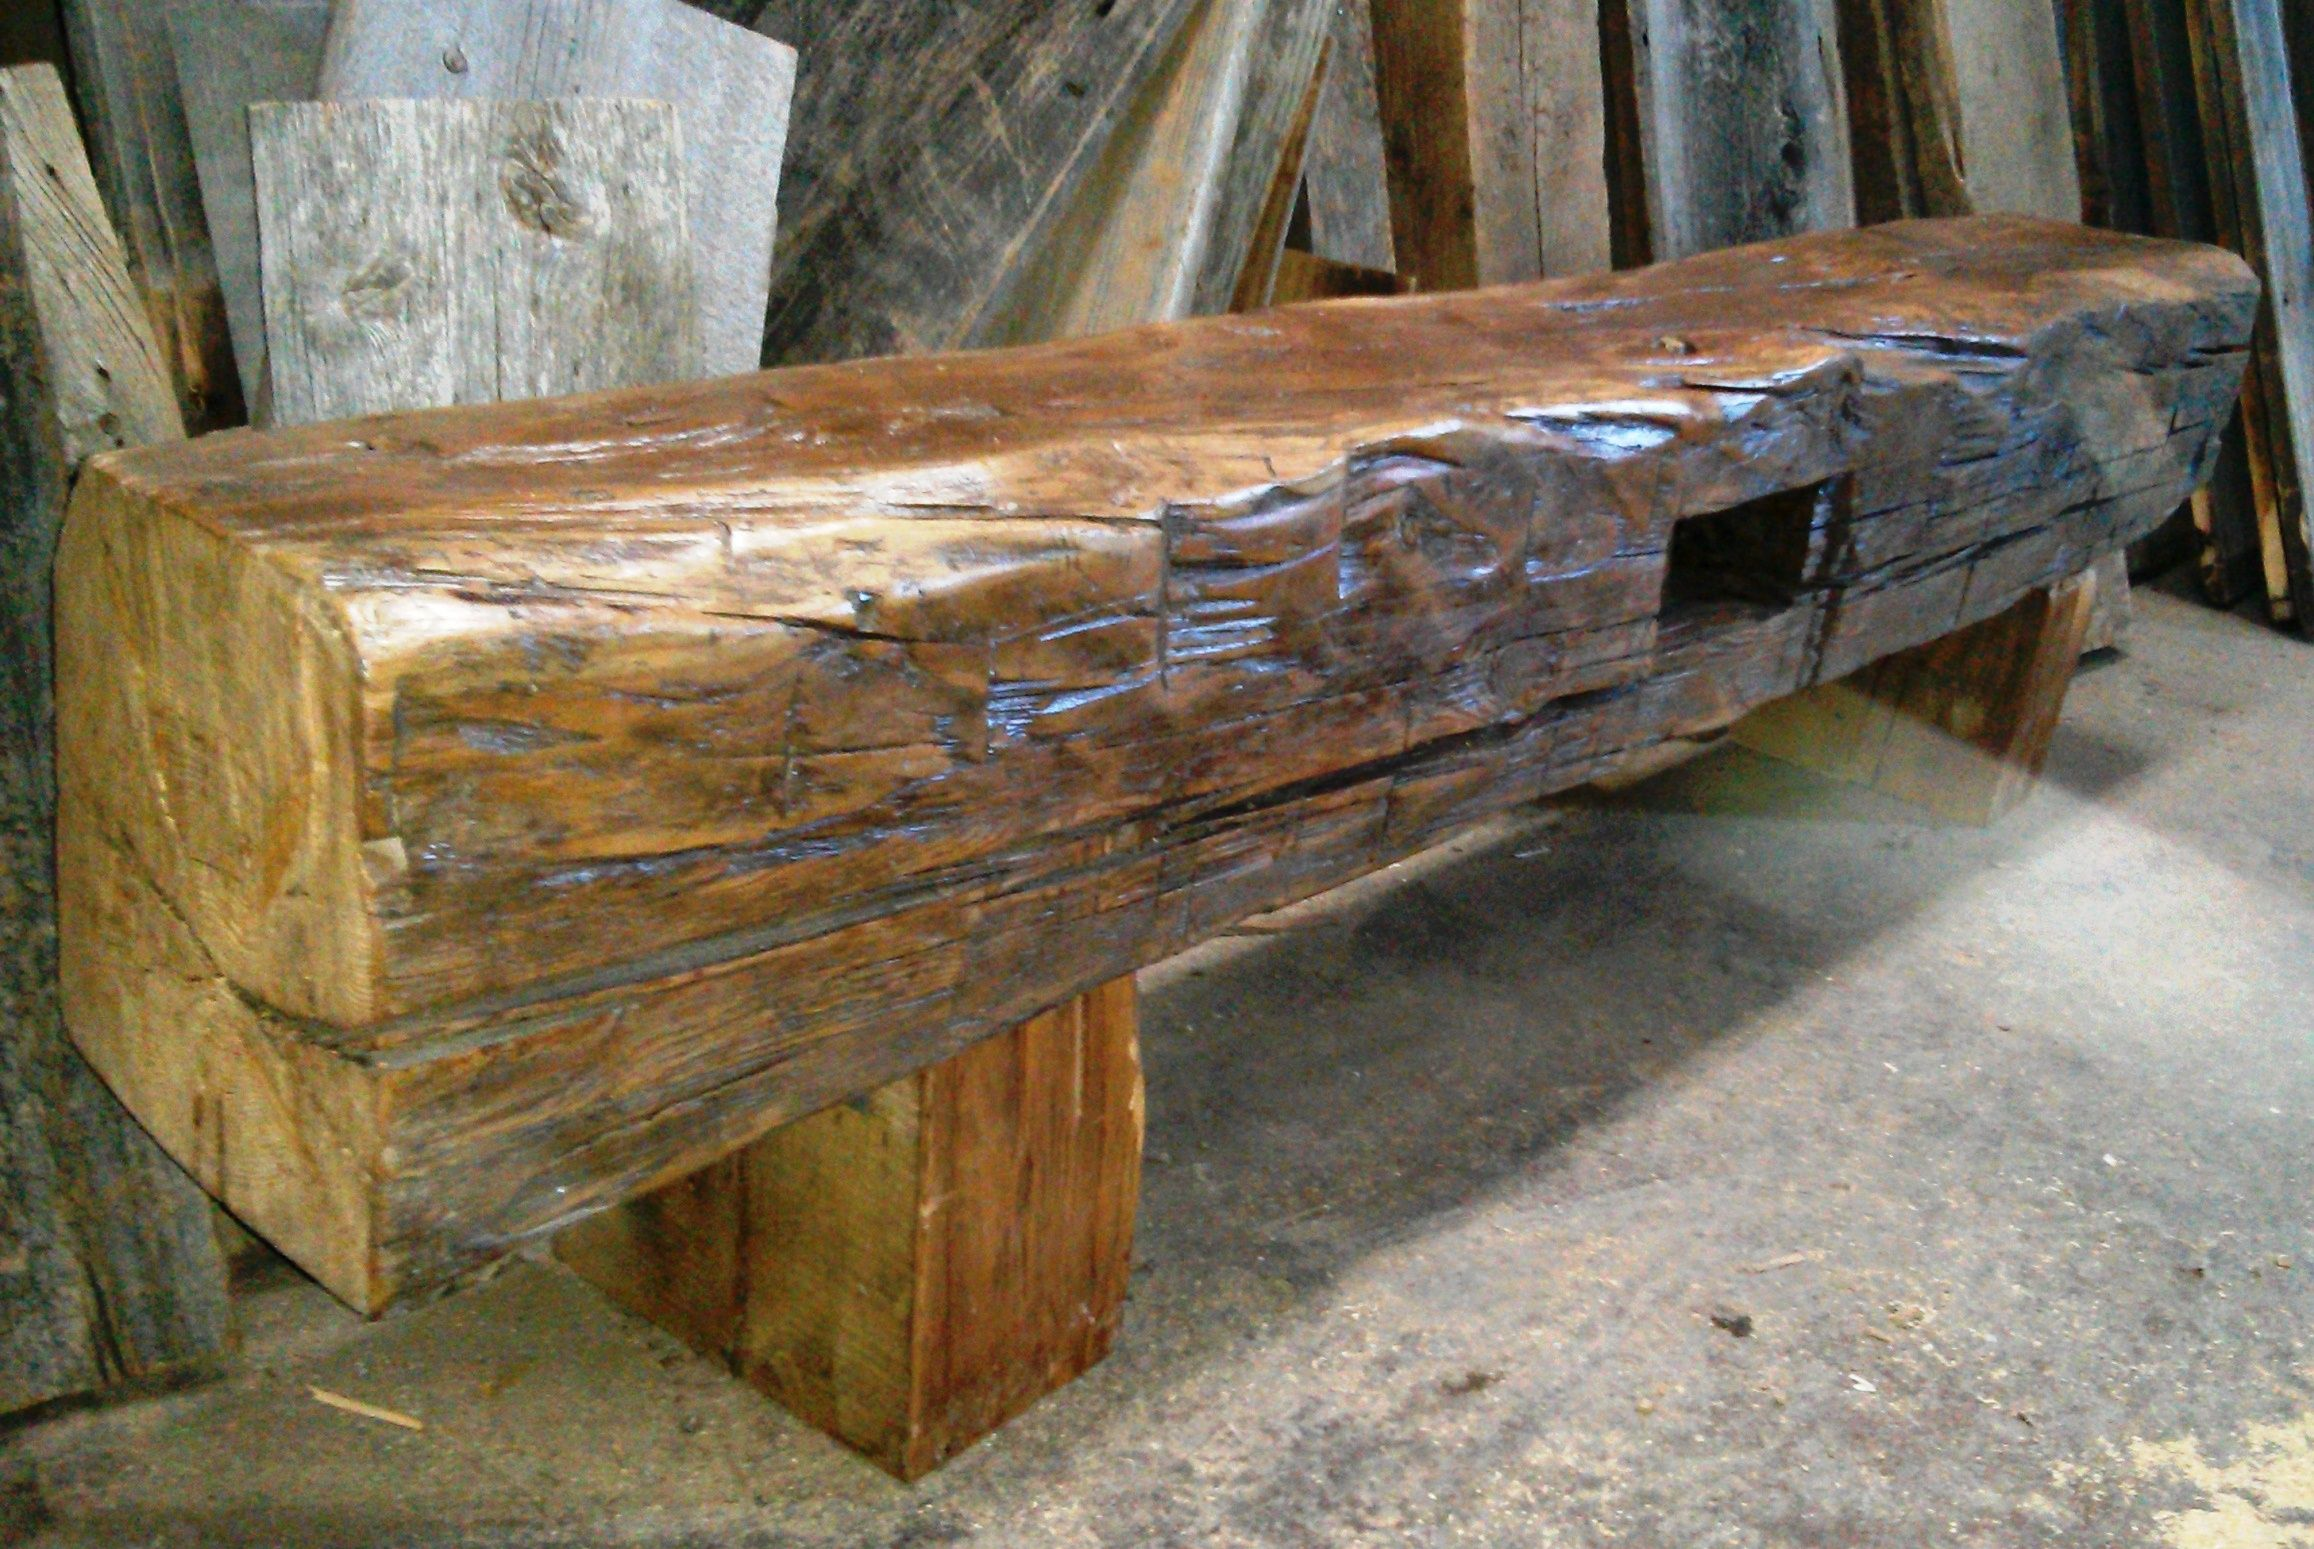 Www Lsl Com The World S 1 Most Visited Video Chat Community Old Barn Wood Reclaimed Wood Benches Barn Wood